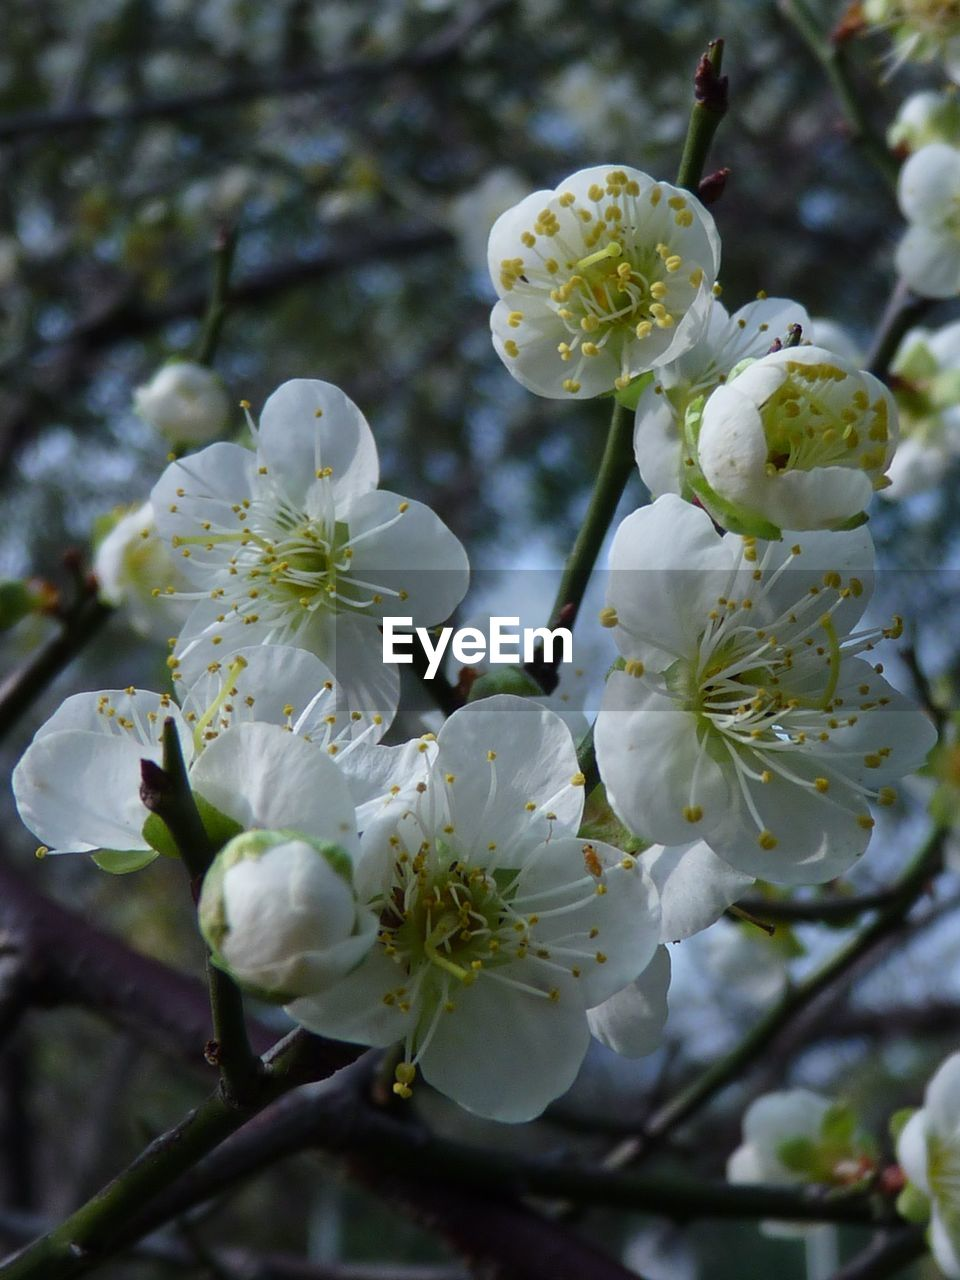 flower, white color, fragility, blossom, beauty in nature, growth, tree, apple blossom, petal, springtime, nature, freshness, botany, apple tree, orchard, branch, twig, close-up, flower head, no people, day, focus on foreground, stamen, outdoors, blooming, plum blossom